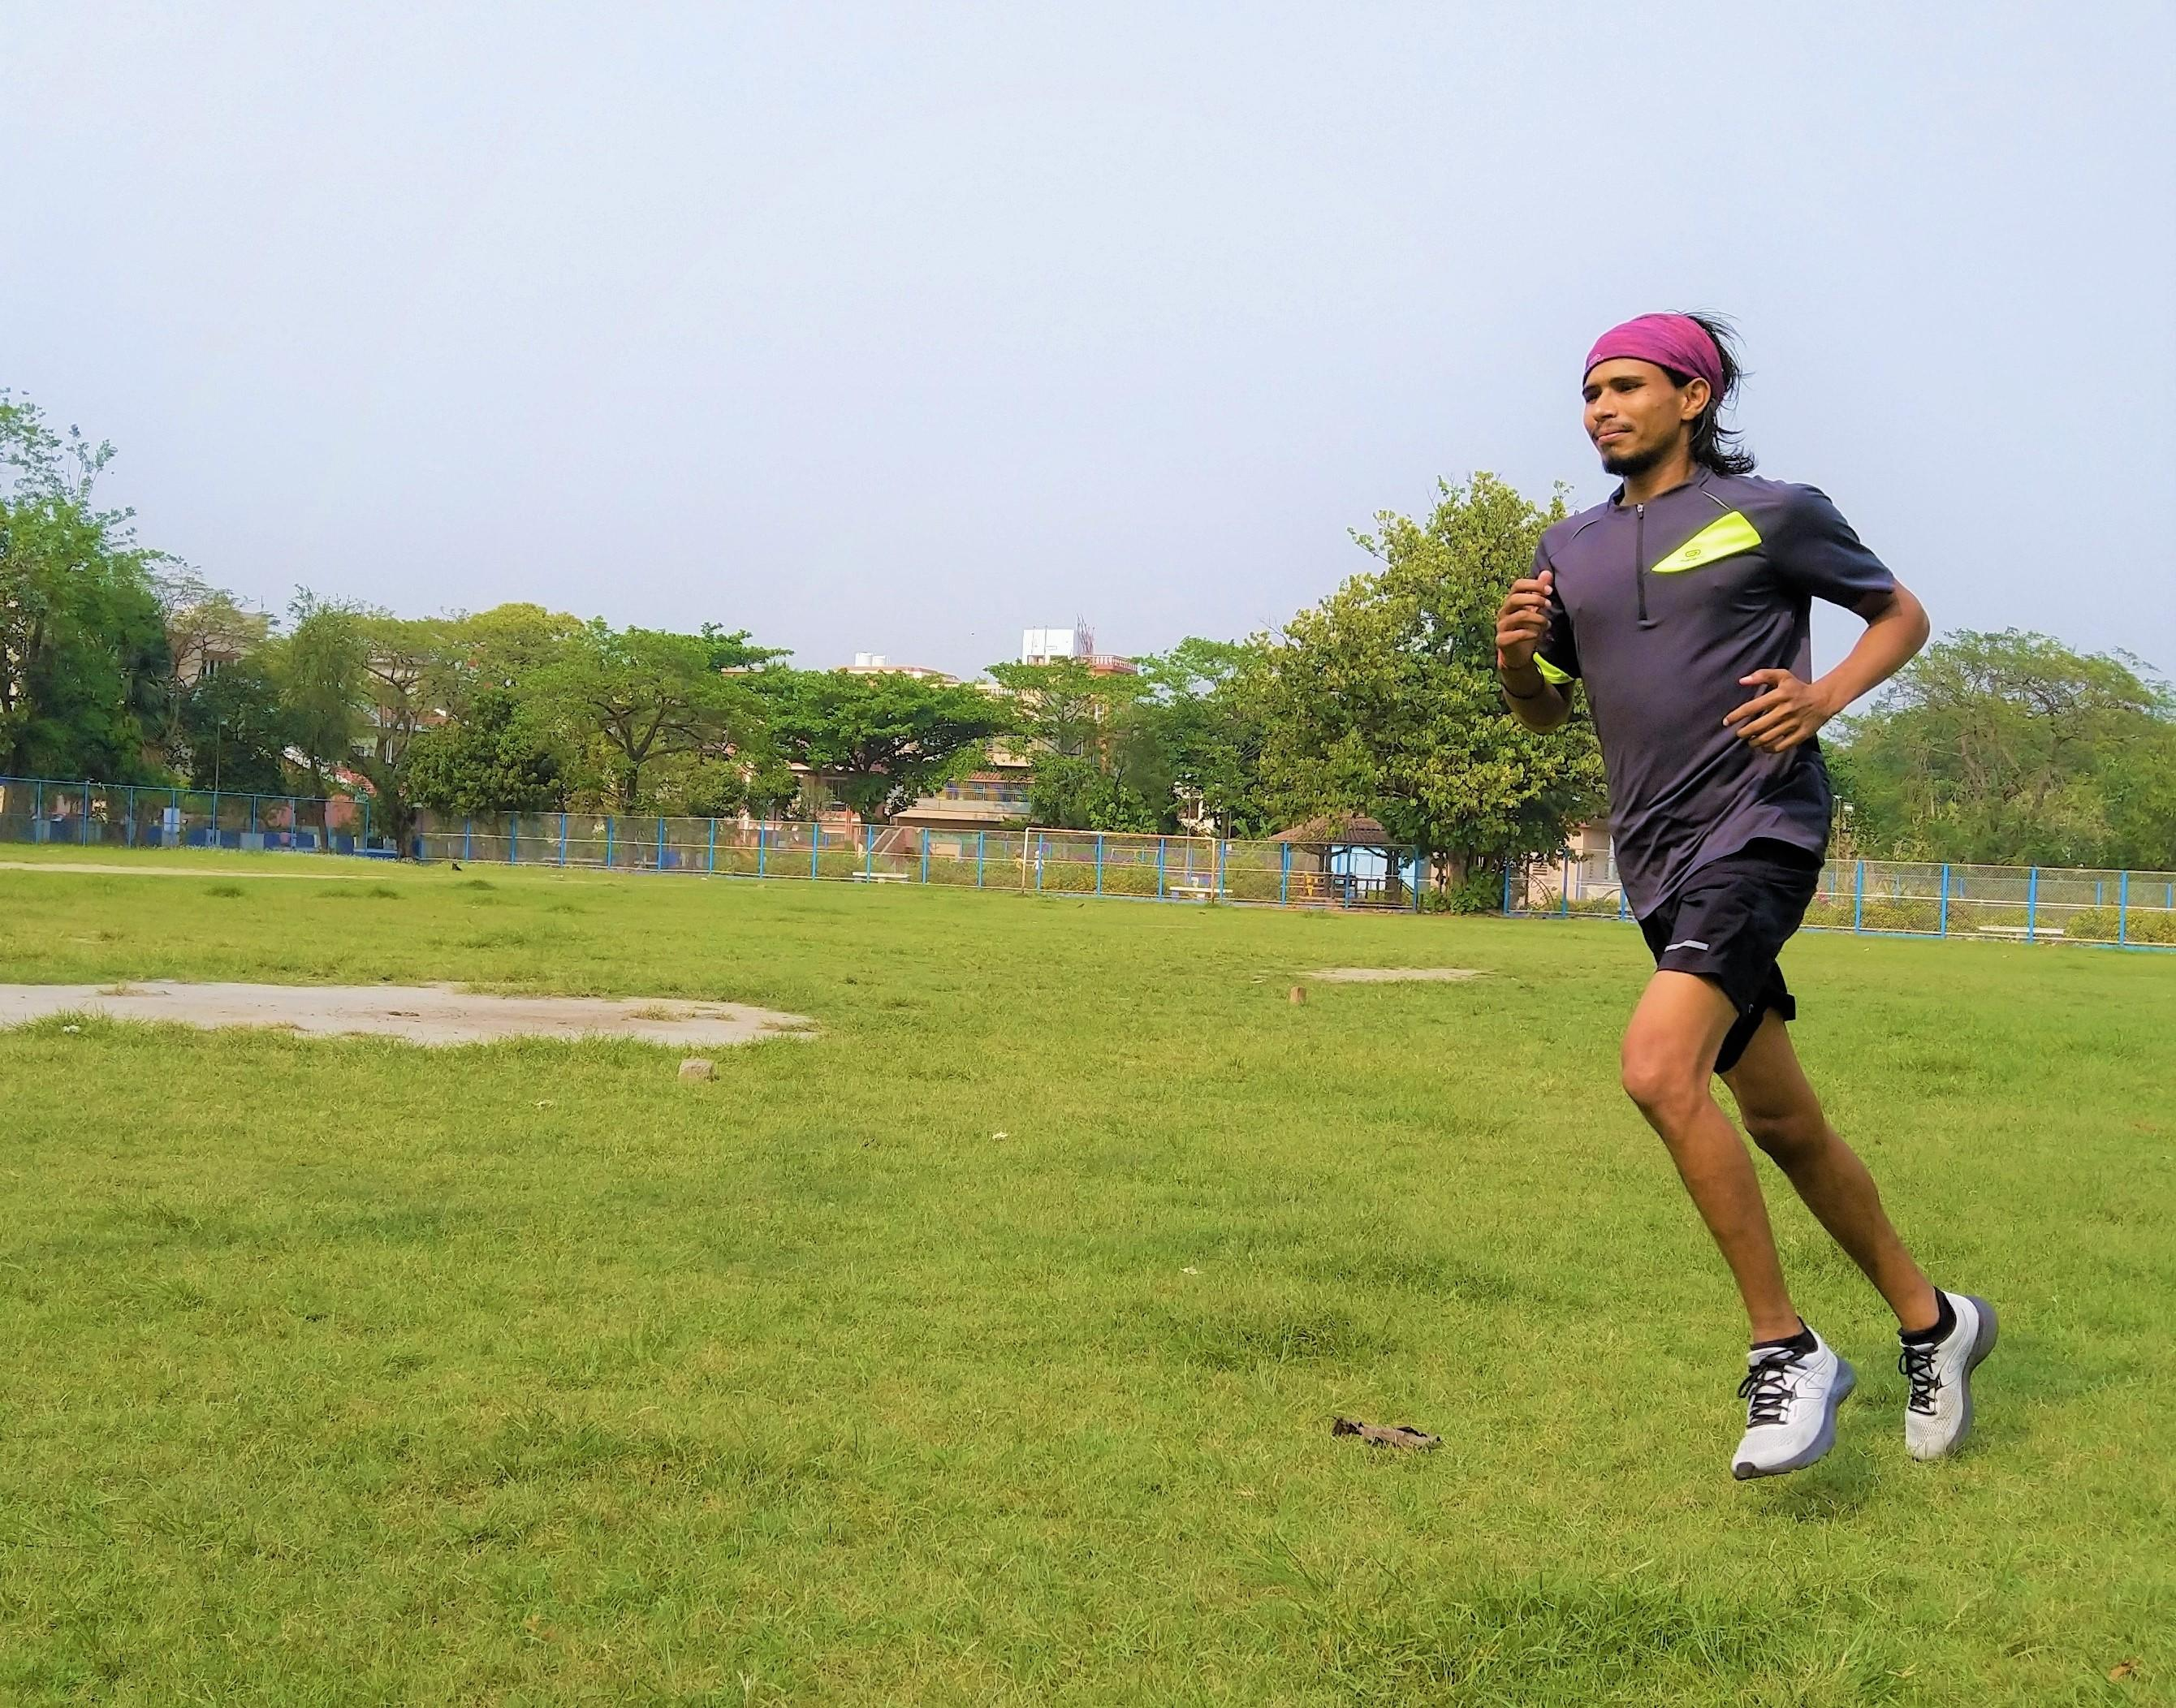 Vivek Singh - Running with a Purpose